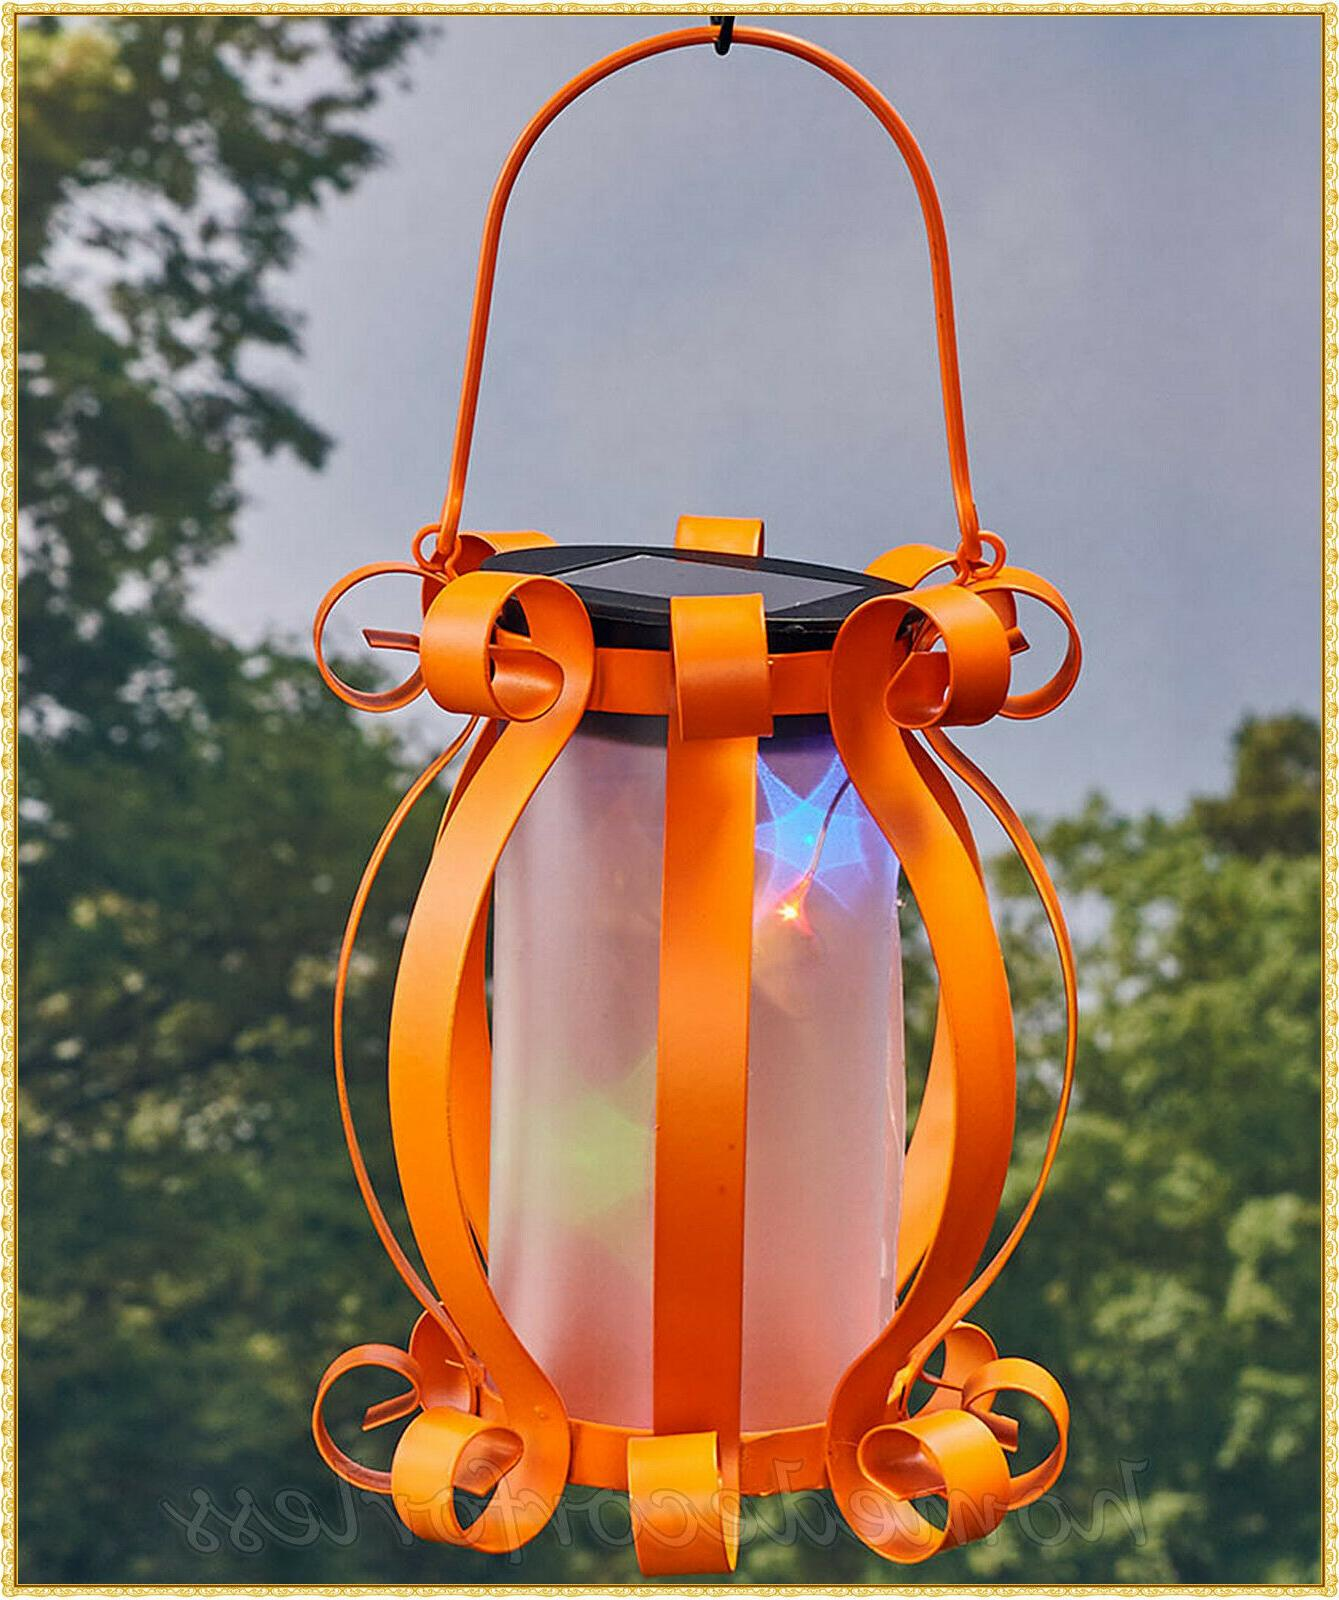 Solar Scroll Lantern Colorful Lights Hanging Patio Outdoor Decor